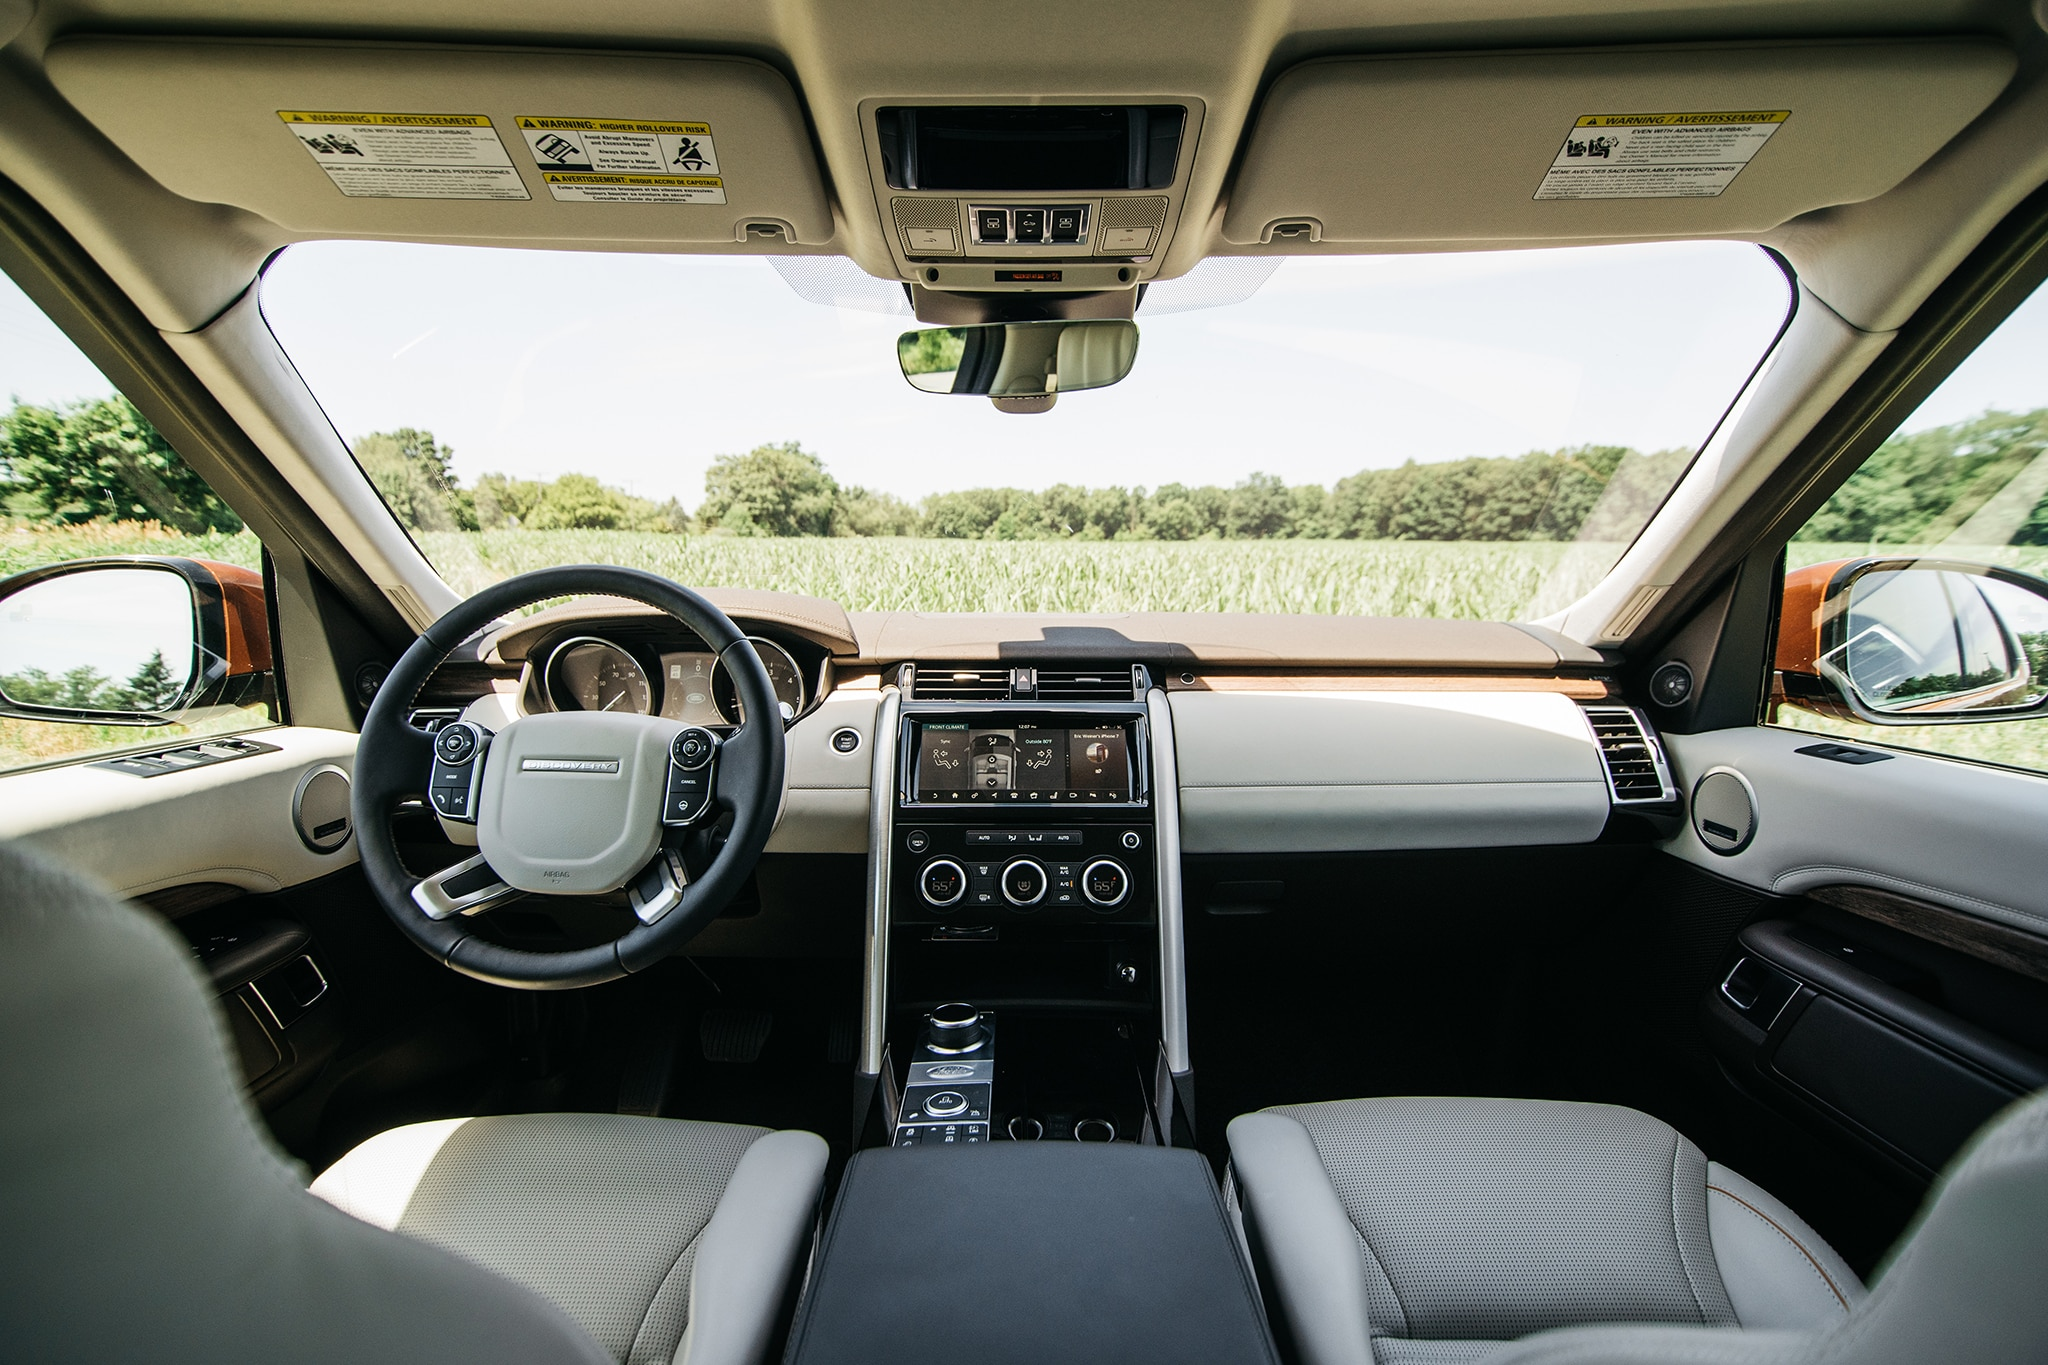 2017 Land Rover Discovery Td6 HSE Cabin 01